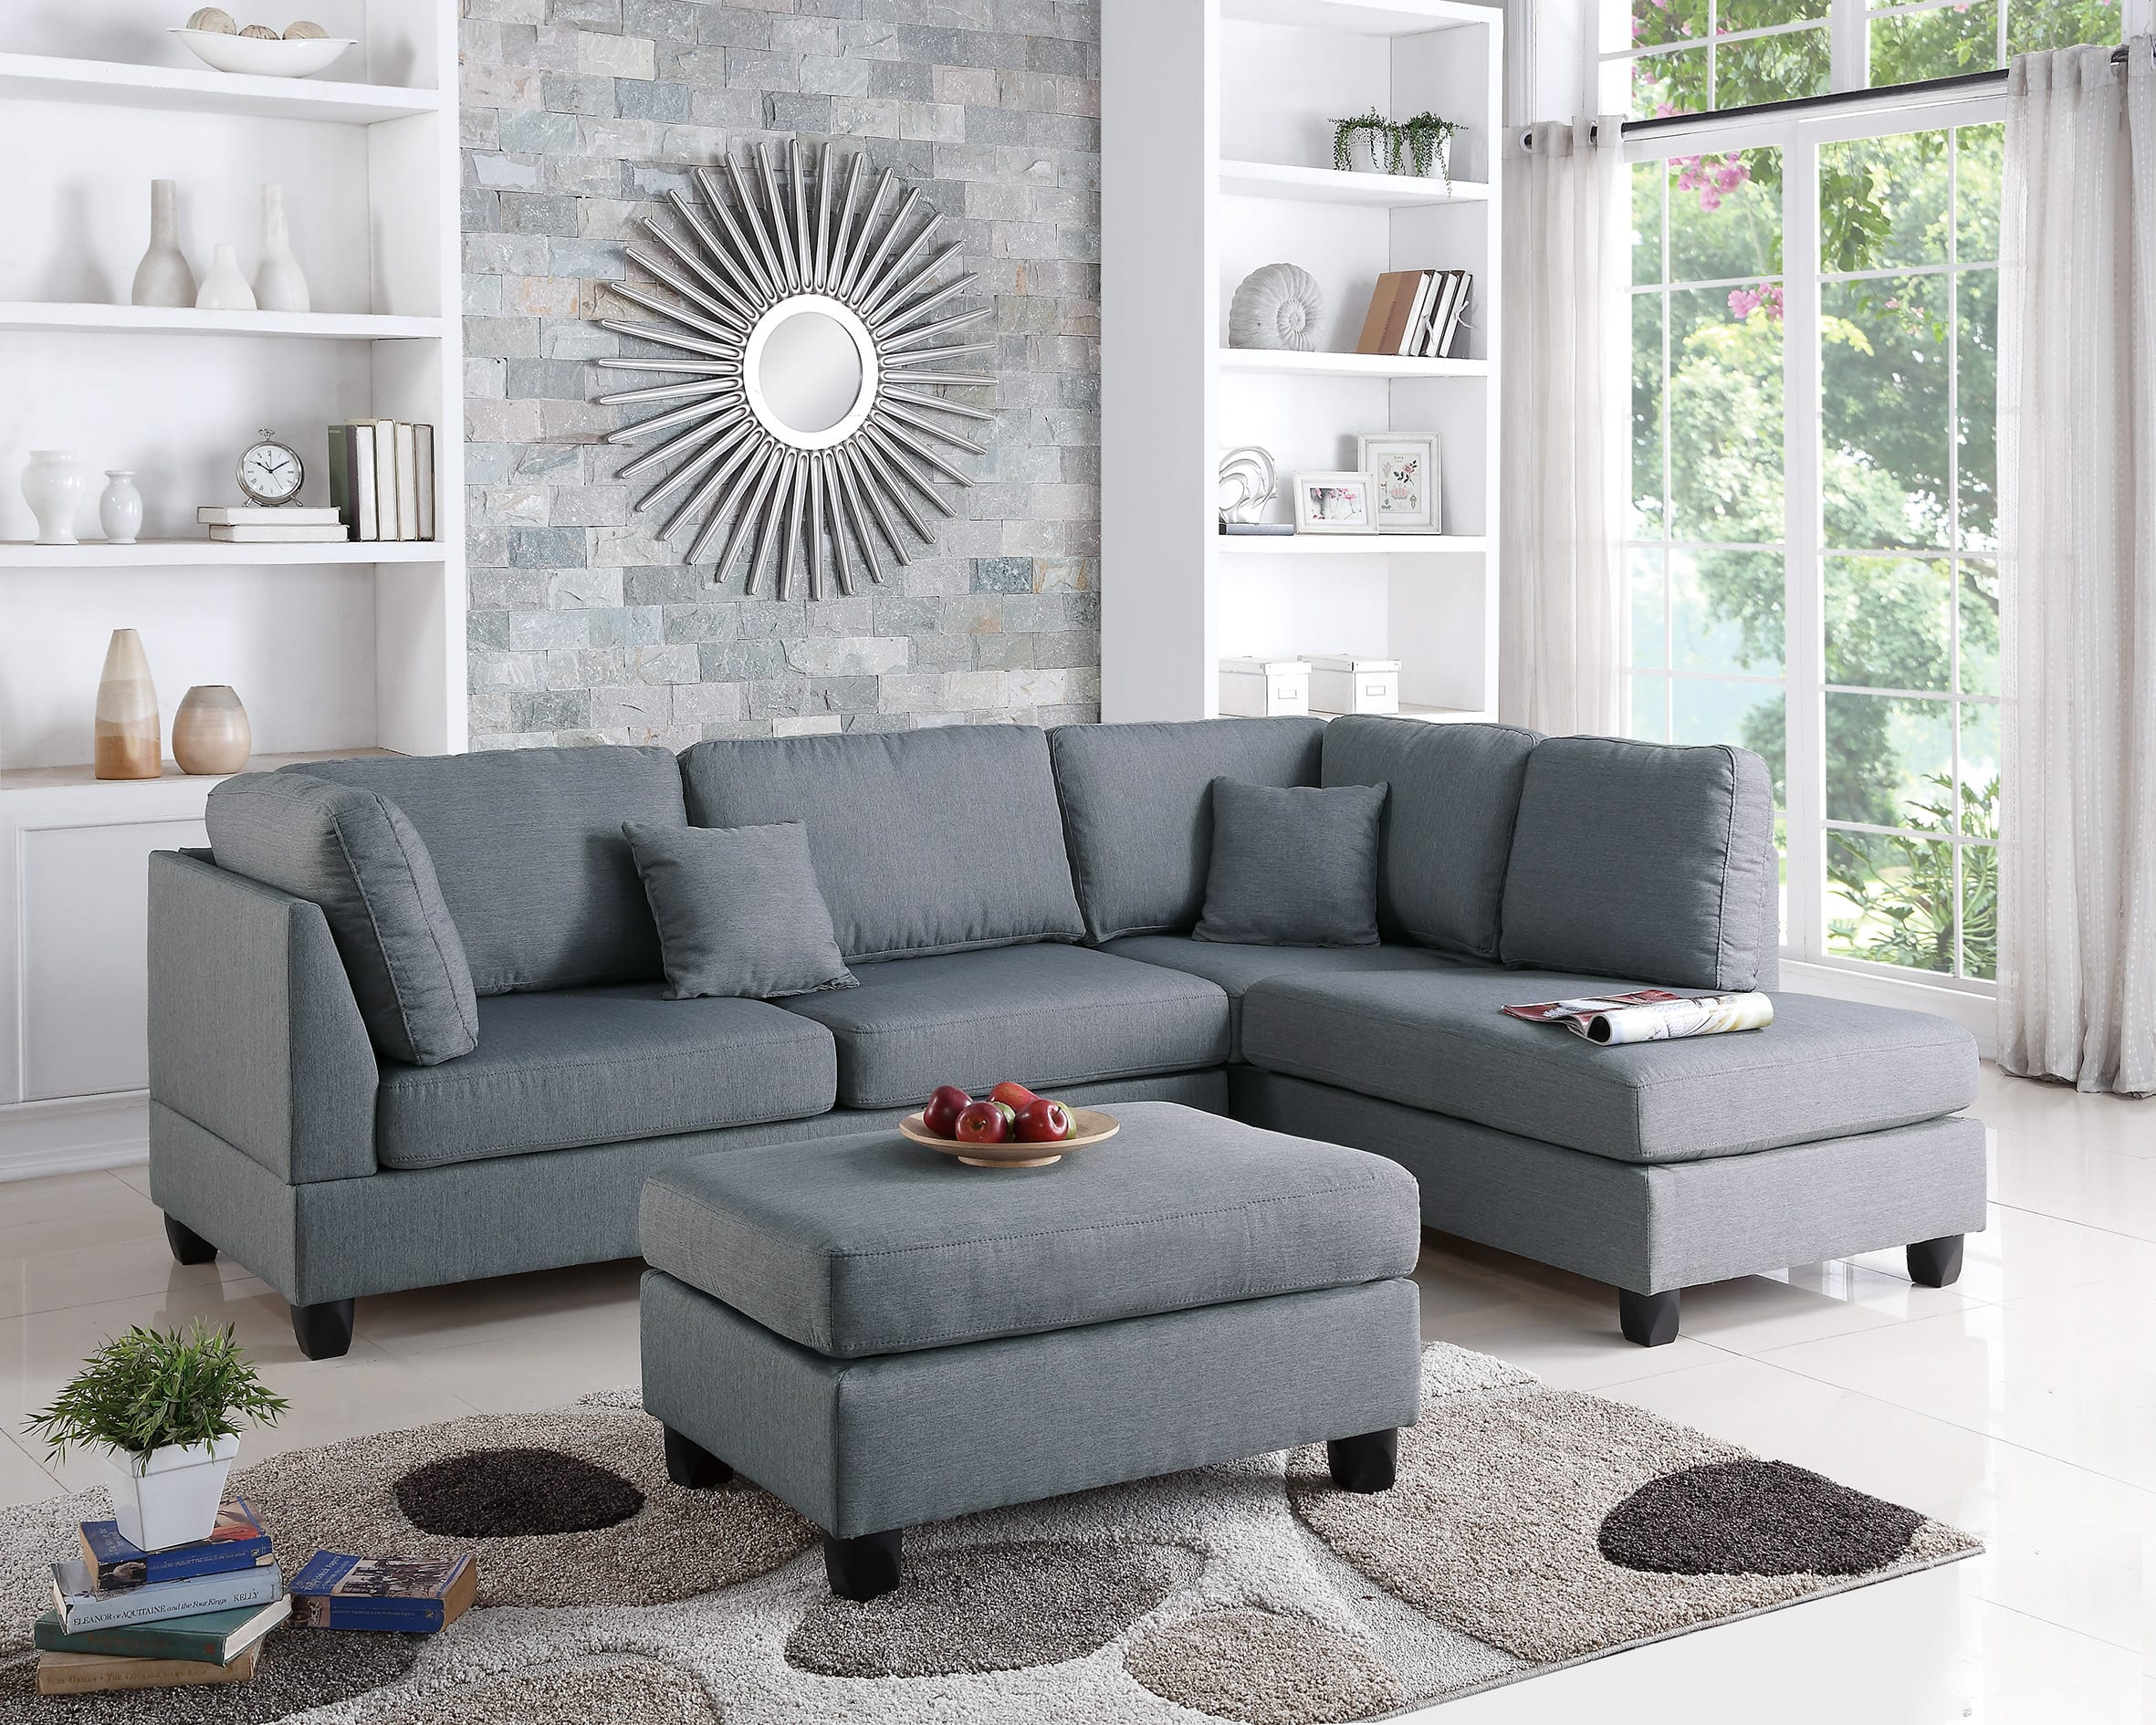 Astonishing F7606 Gray 2 Pcs Sectional Sofa Set By Poundex Inzonedesignstudio Interior Chair Design Inzonedesignstudiocom